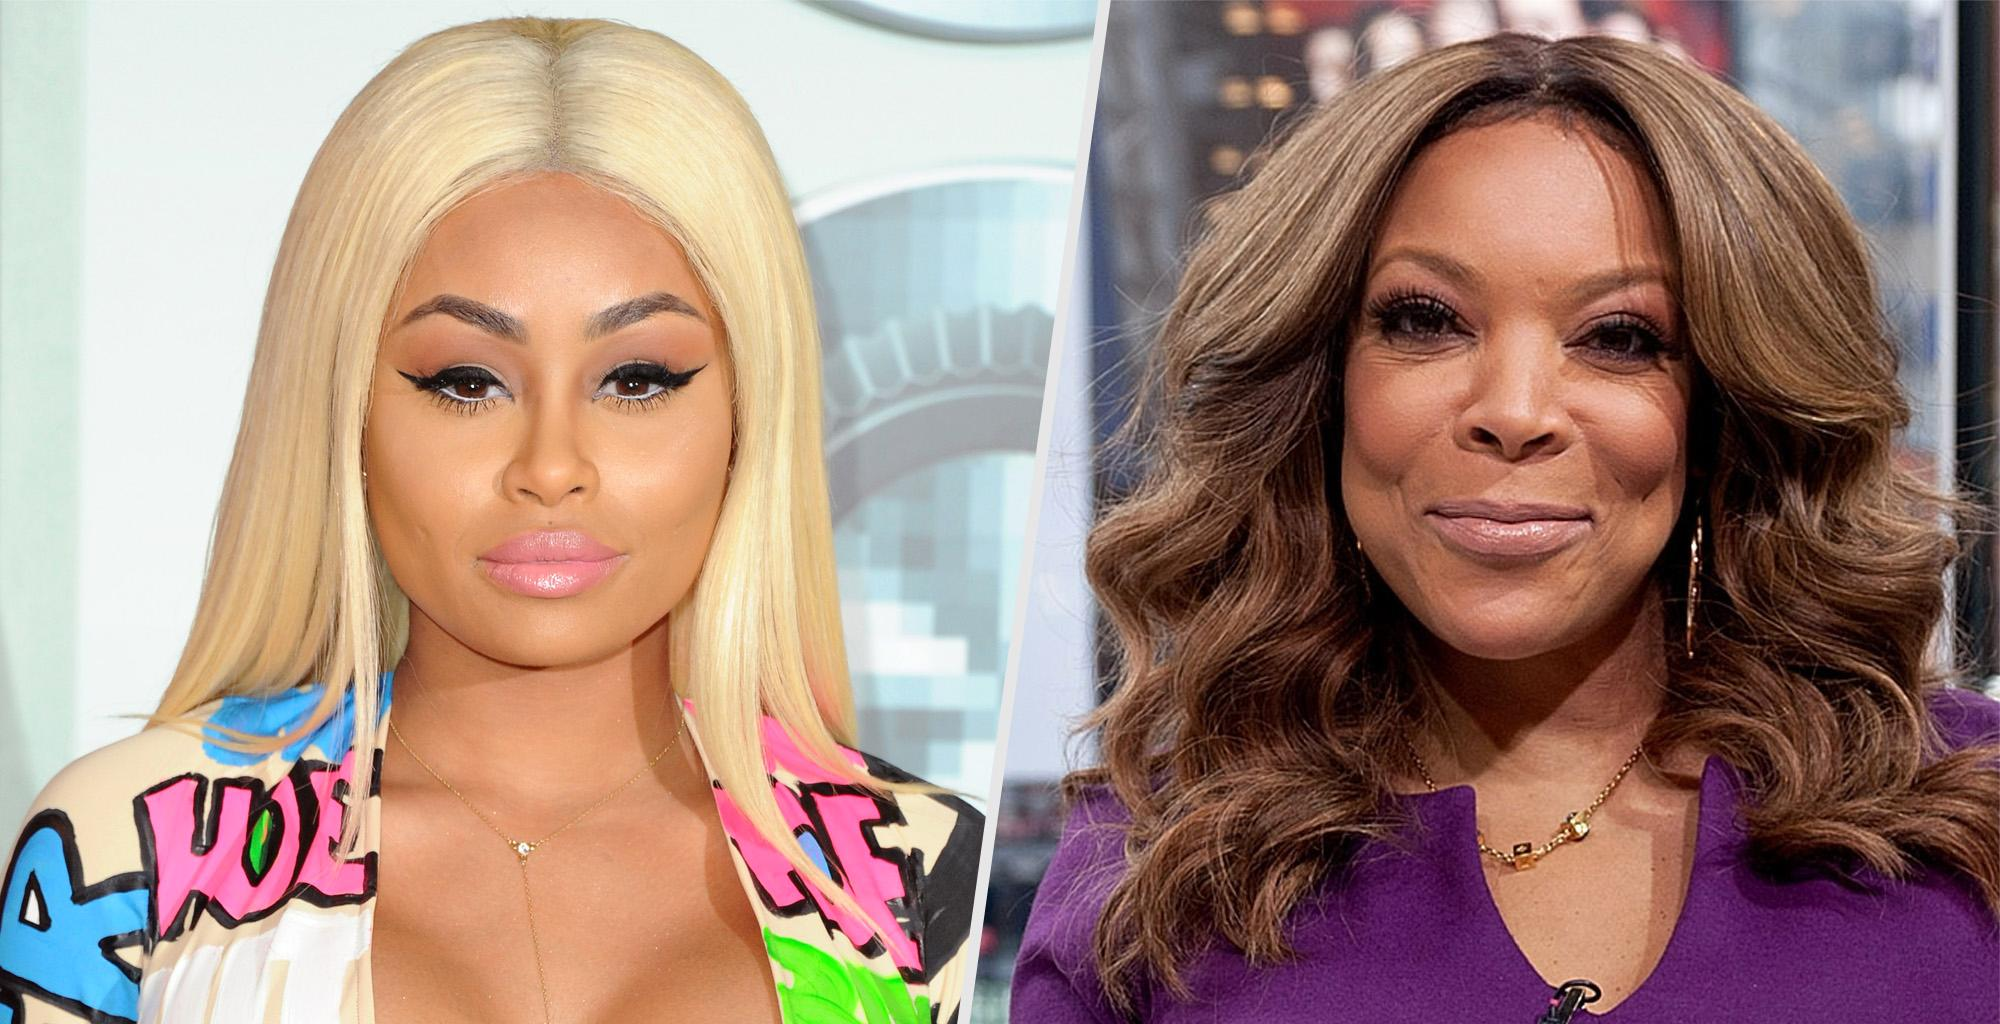 Wendy Williams Disses Blac Chyna For Unexpectedly Showing Up At The Oscars Amid Similar Confusion From Fans - 'How Was She There?'